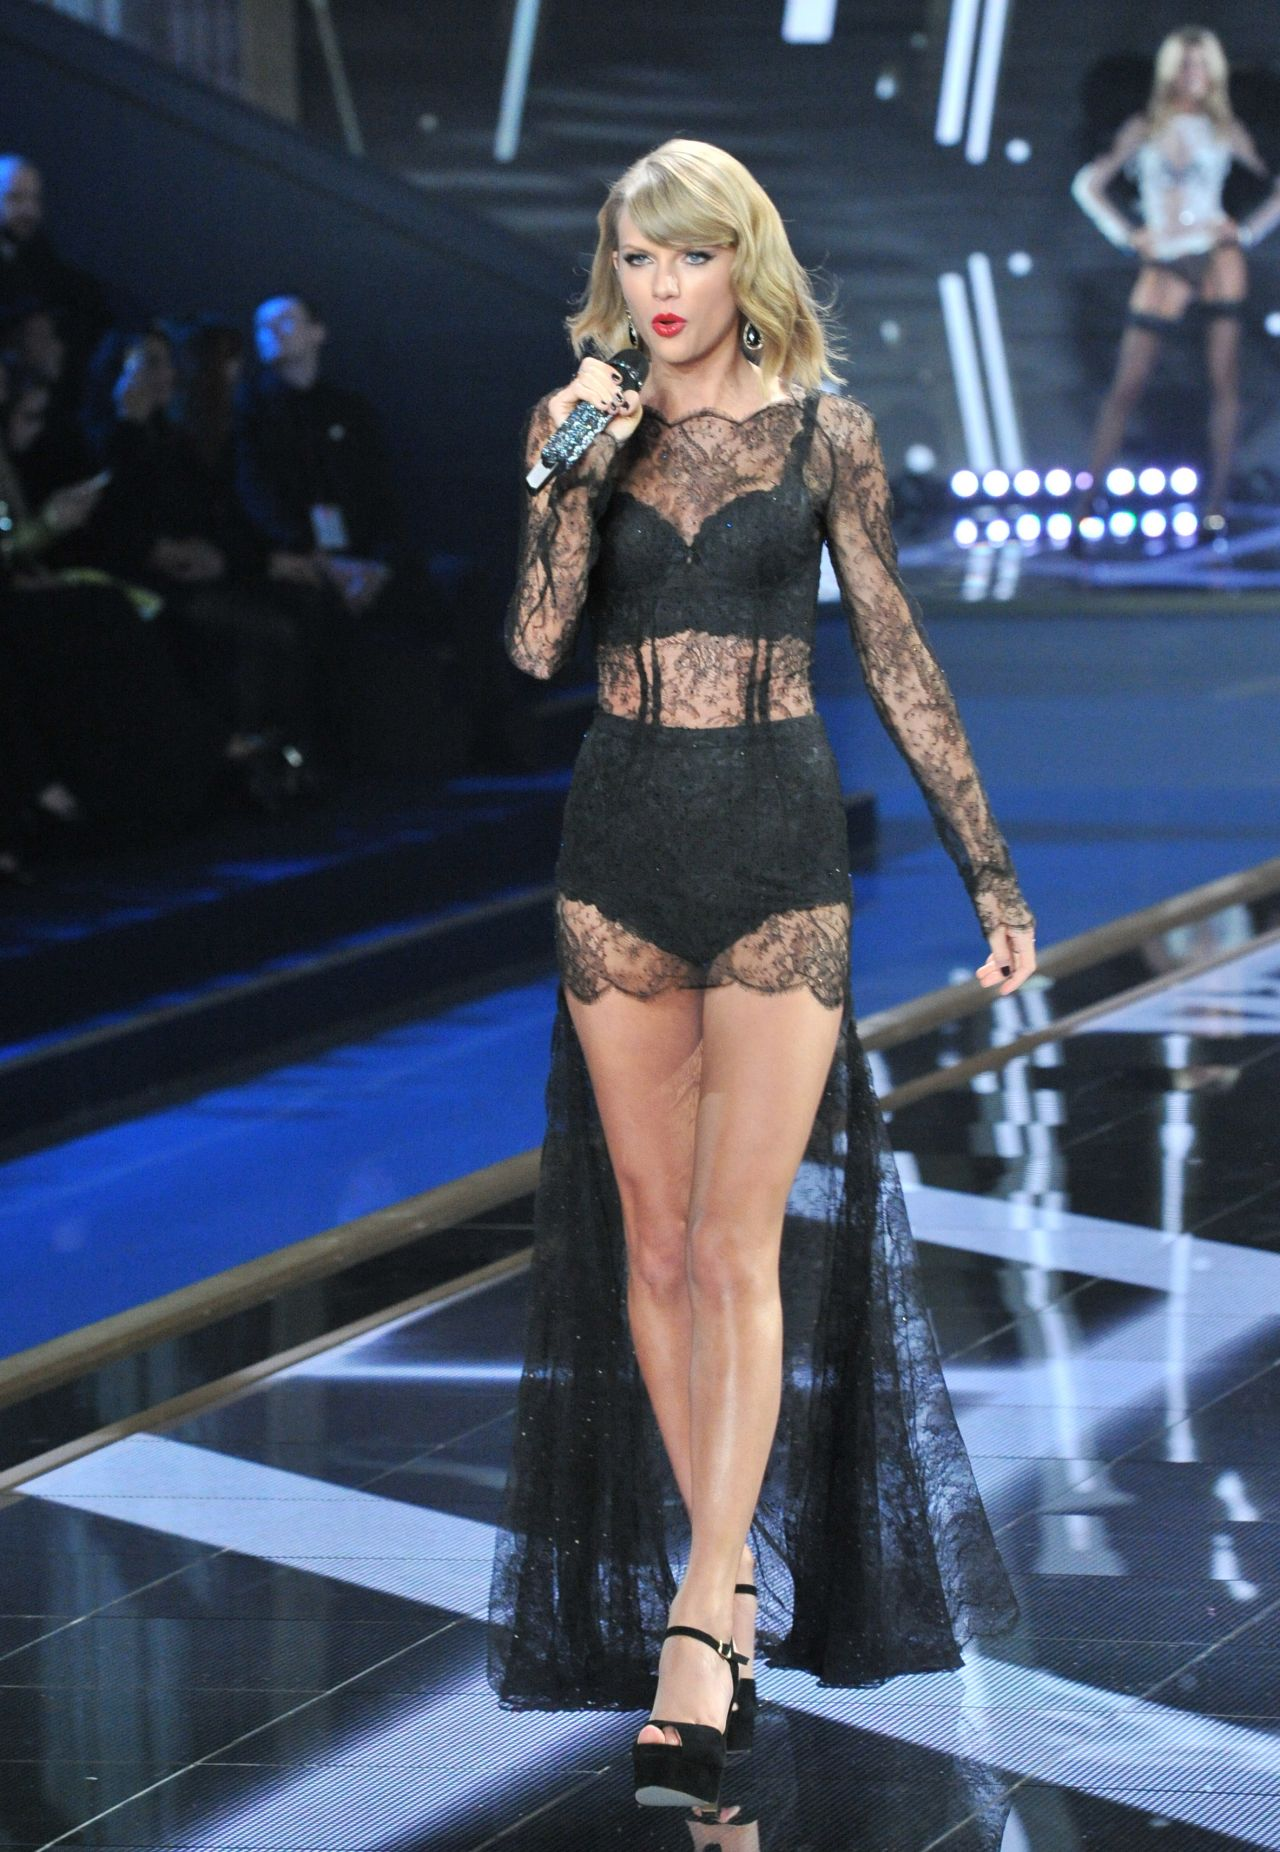 81f6ab65a97 Taylor Swift Performs at Victoria's Secret Fashion Show in London –  December 2014